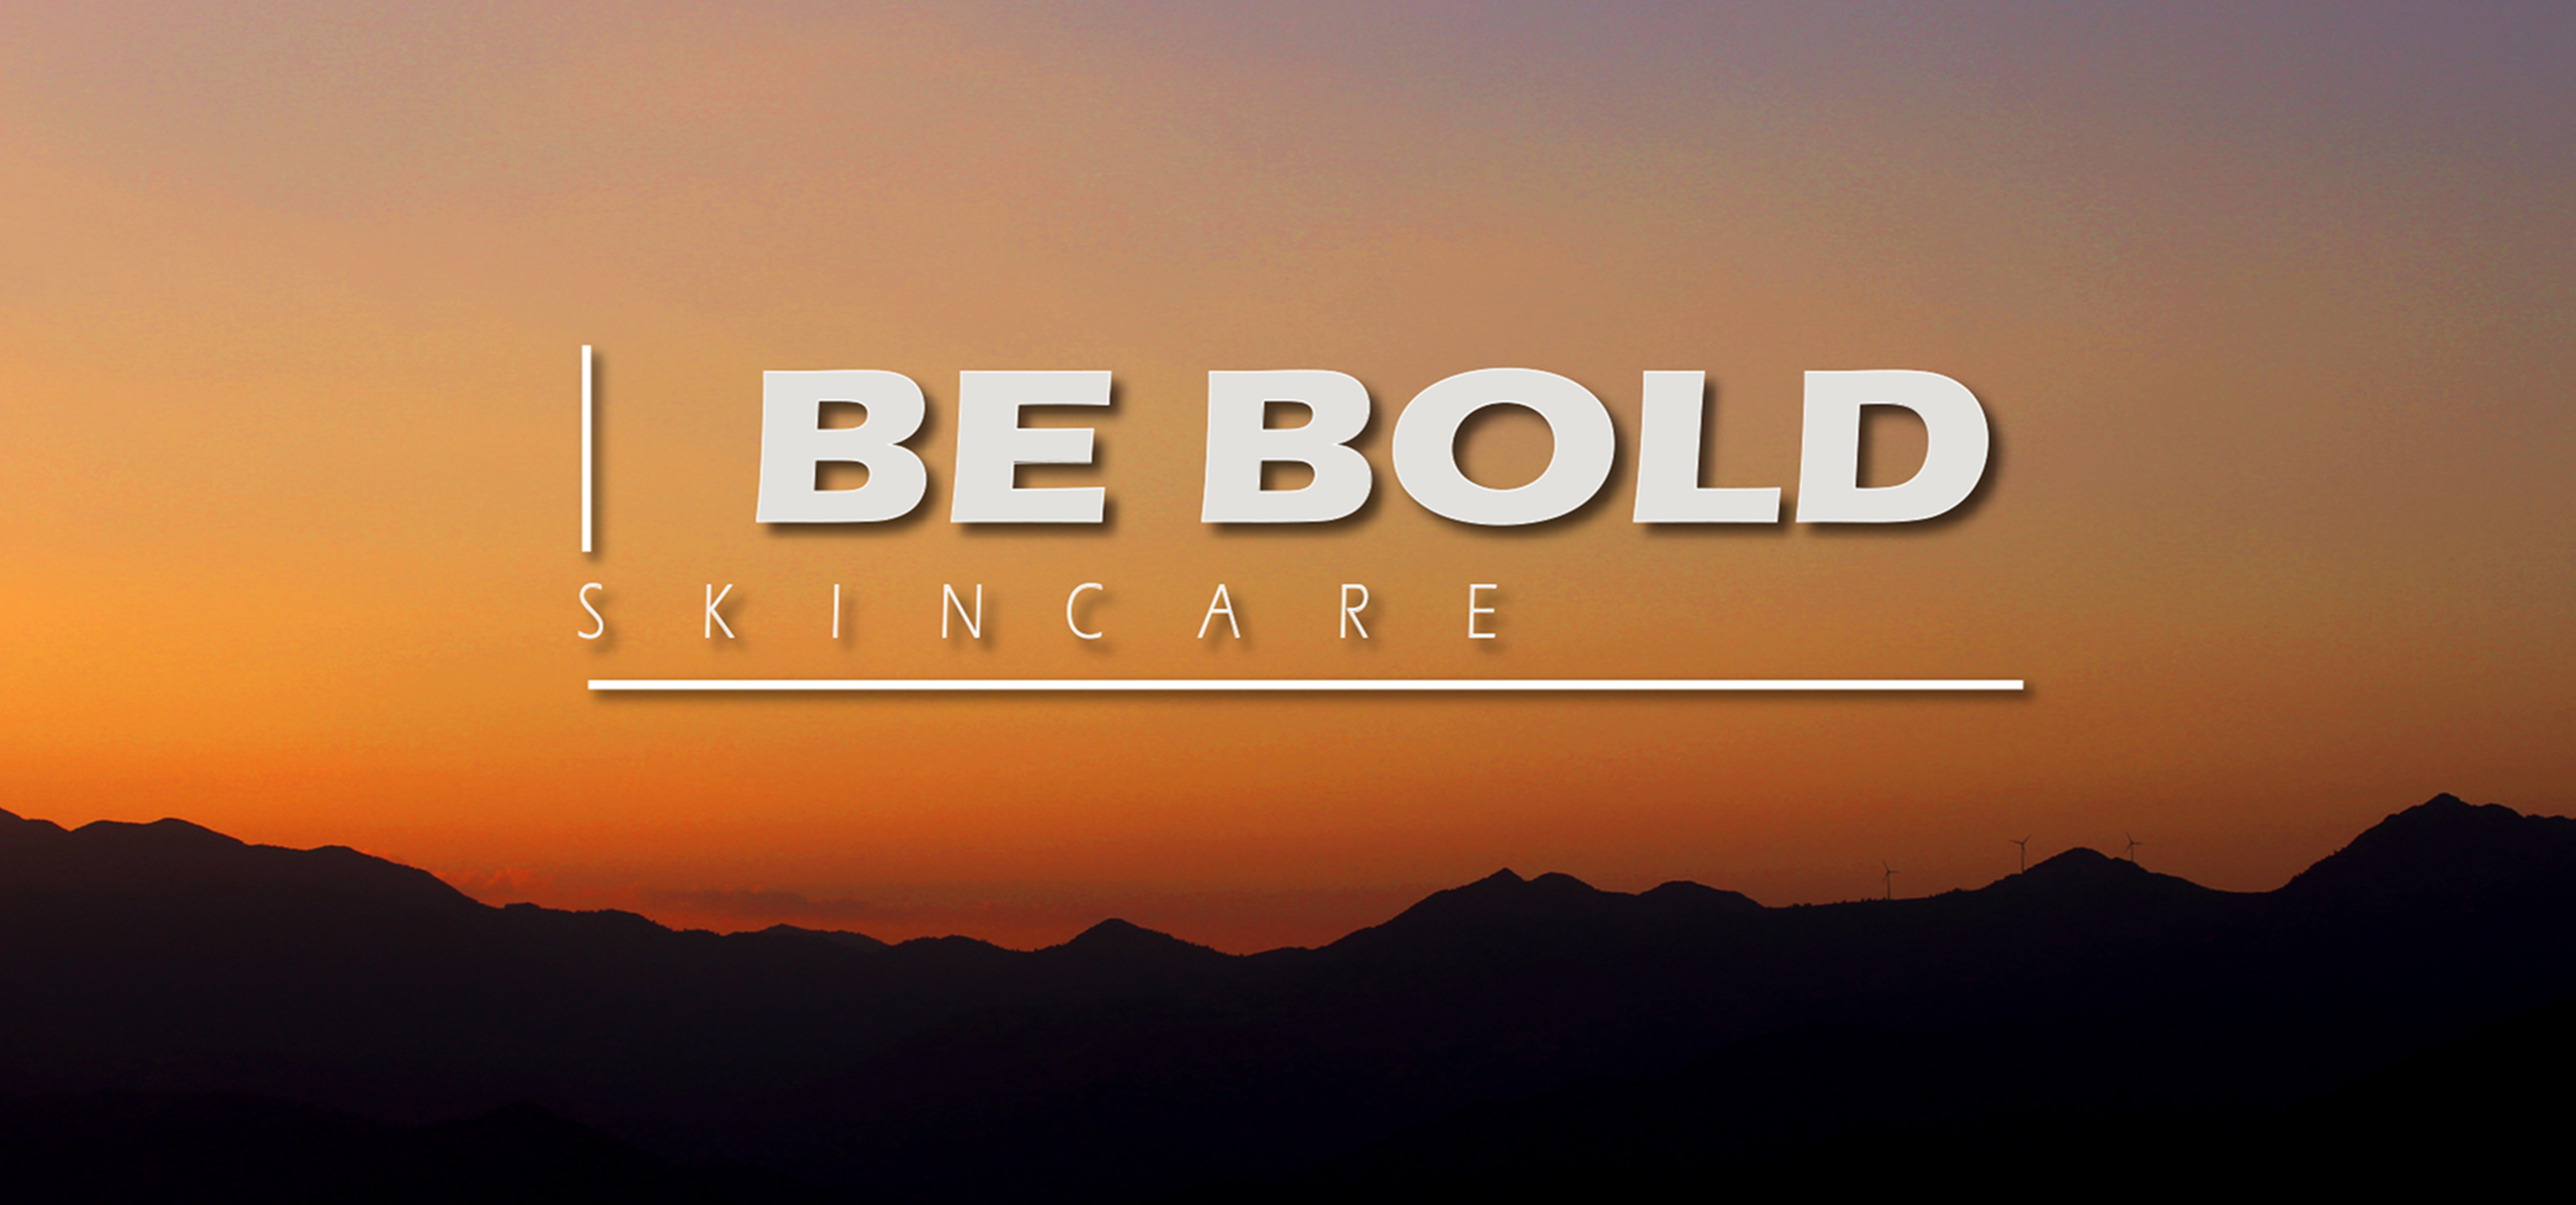 BE BOLD | SKIN CARE - logo design